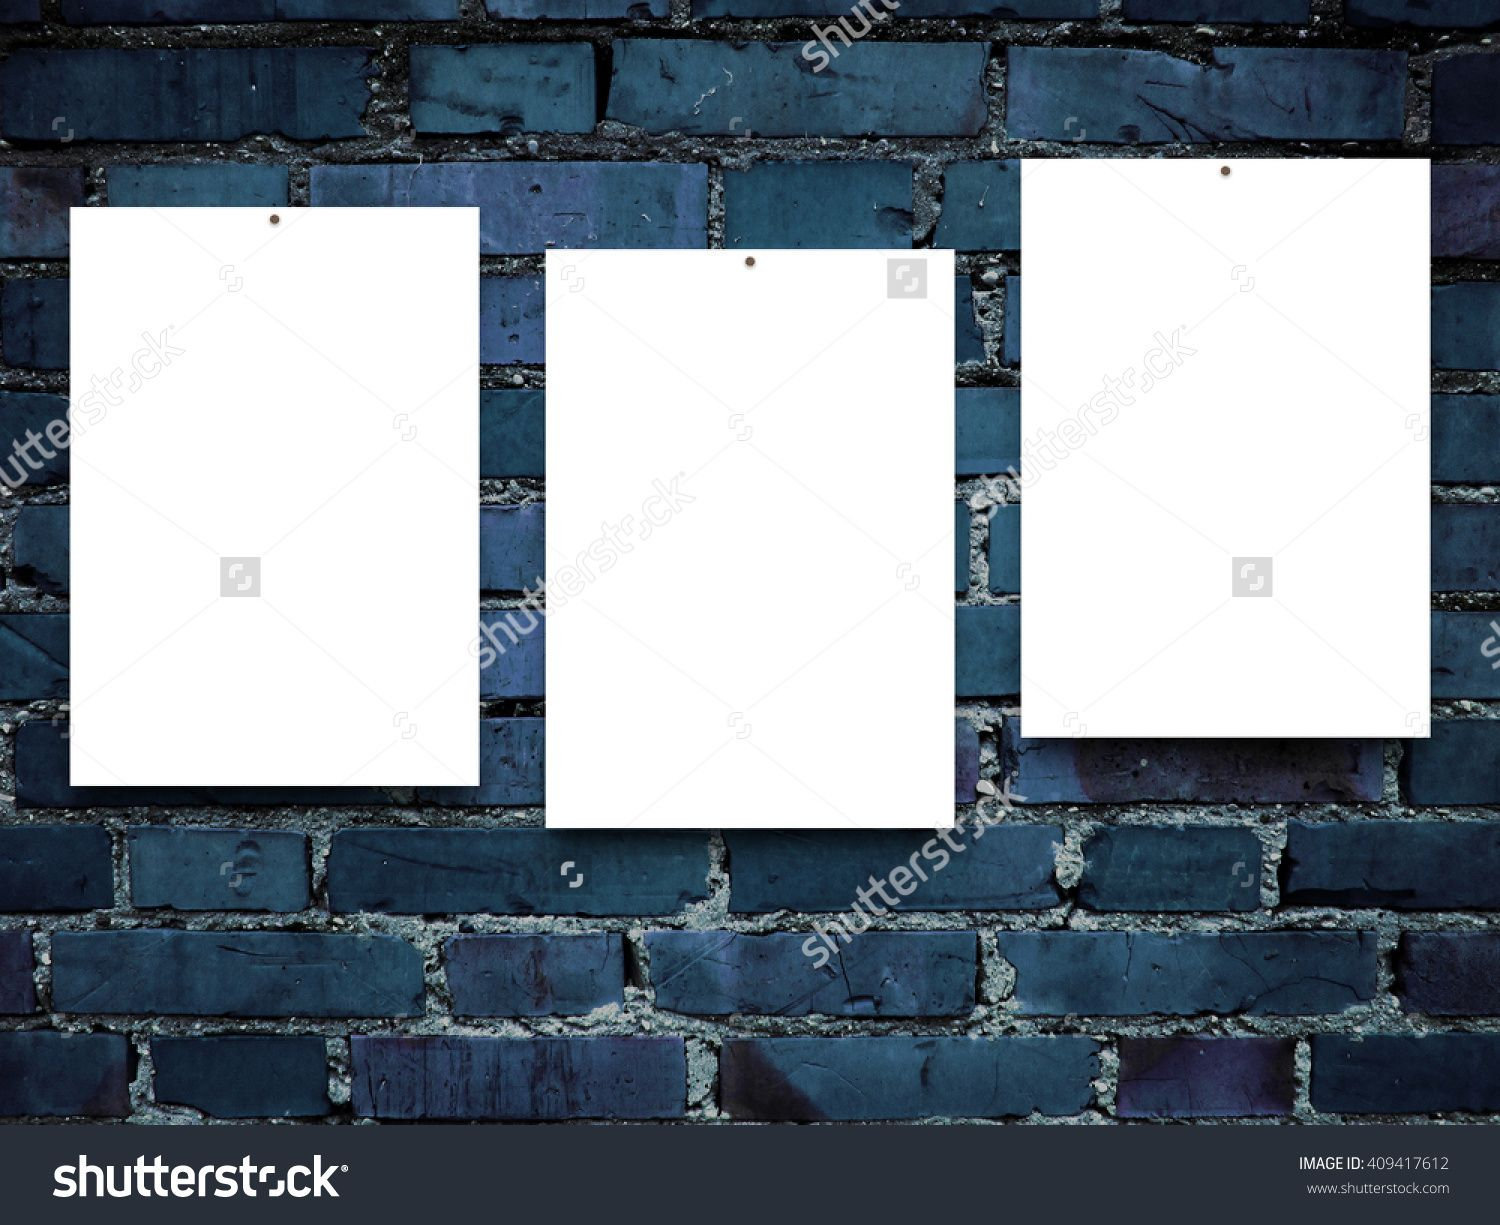 Close-up of three nailed blank frames on blue brick wall background